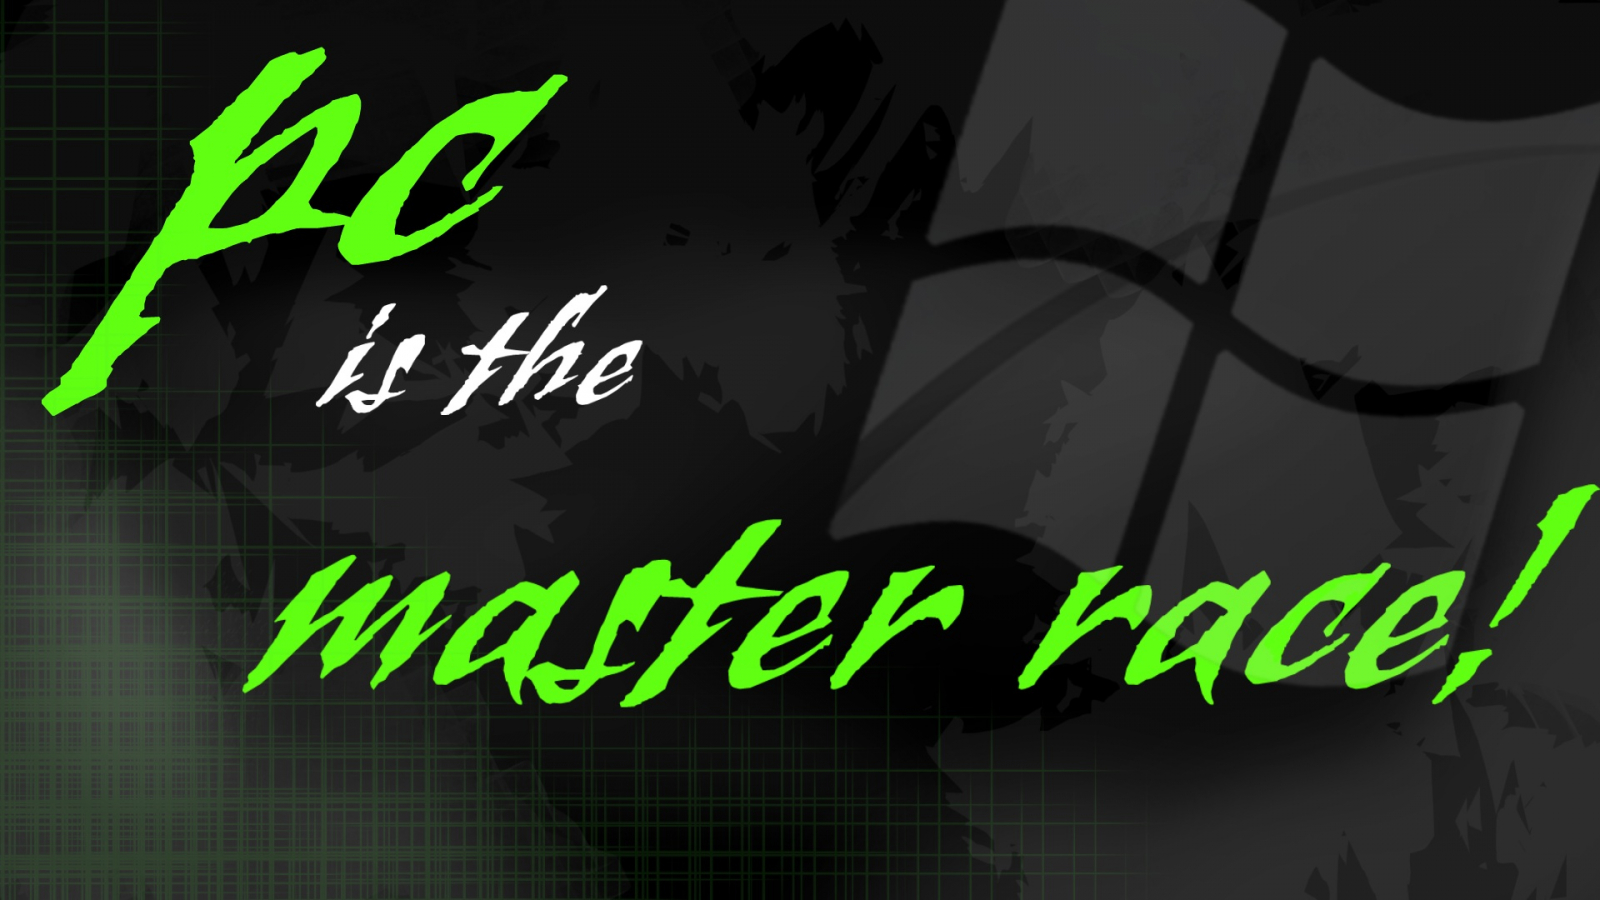 Free Download Pc Master Race Wallpaper 1920x1080 Pc Is The Master